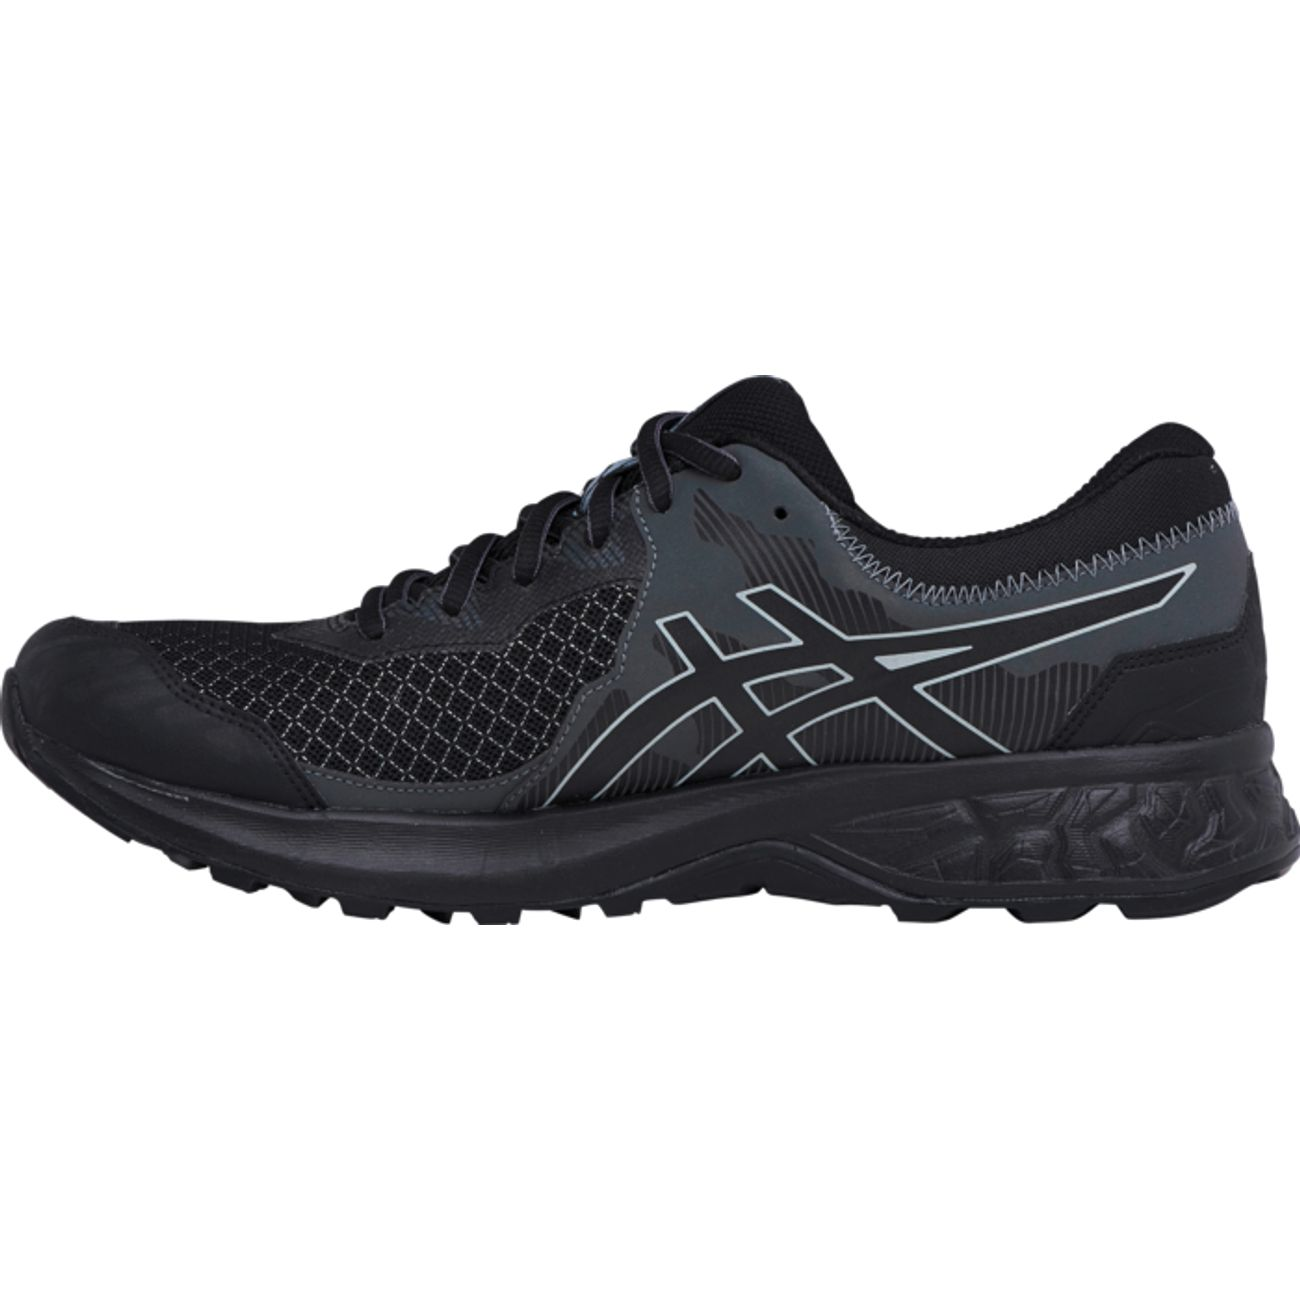 CHAUSSURES BASSES Trail homme ASICS GEL-SONOMA 4 GT-X